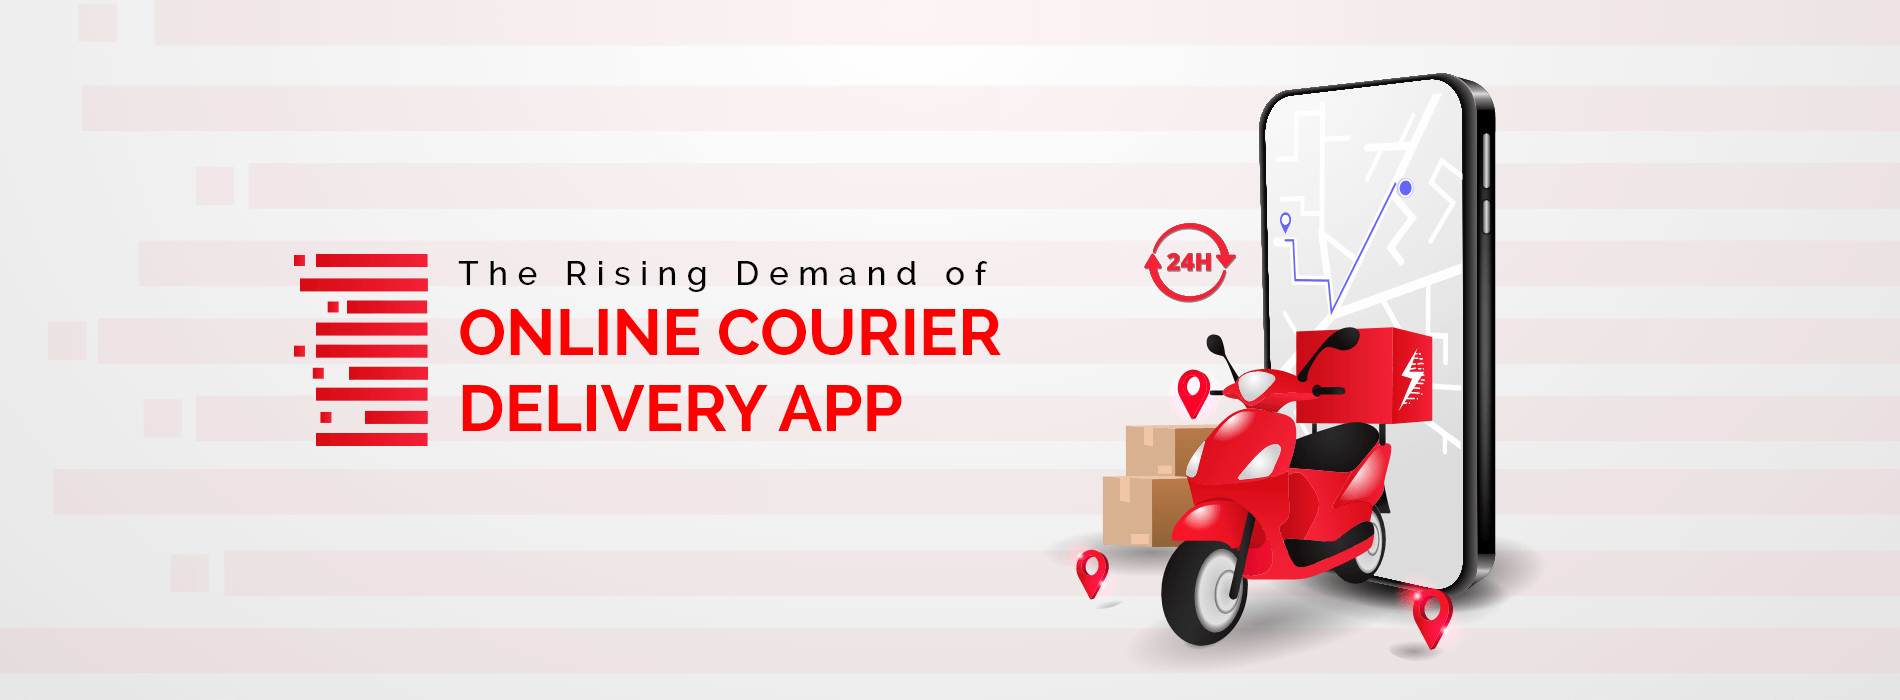 The Rising Demand of Online Courier Delivery App